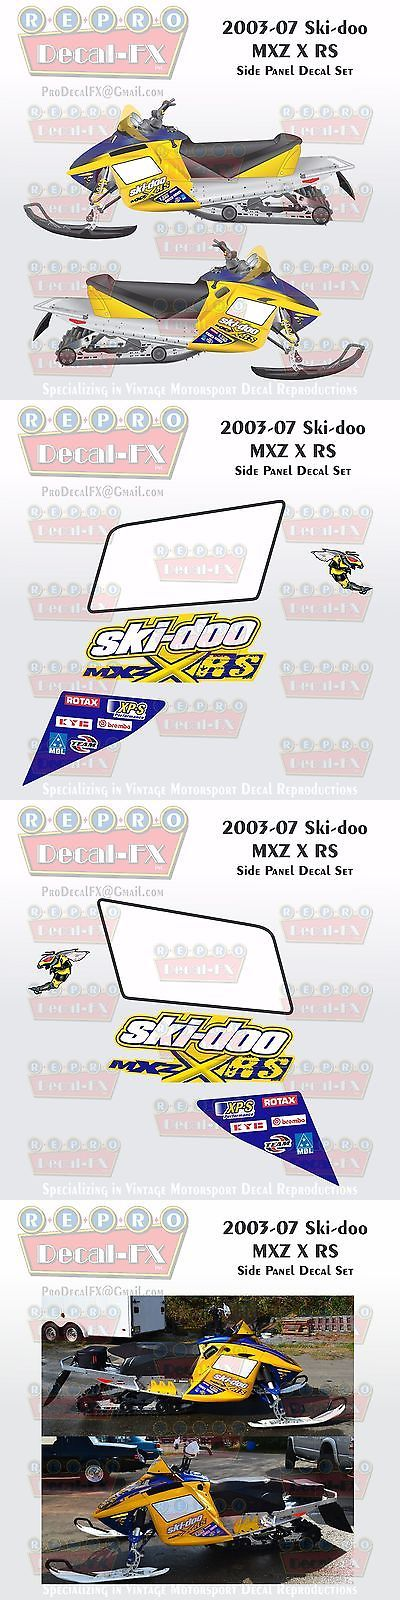 Snowmobile Parts 23834: 2003-07 Ski-Doo Mxz X Rs Rev Reproduction Side Panel Vinyl Decals 8 Pieces -> BUY IT NOW ONLY: $104.95 on eBay!